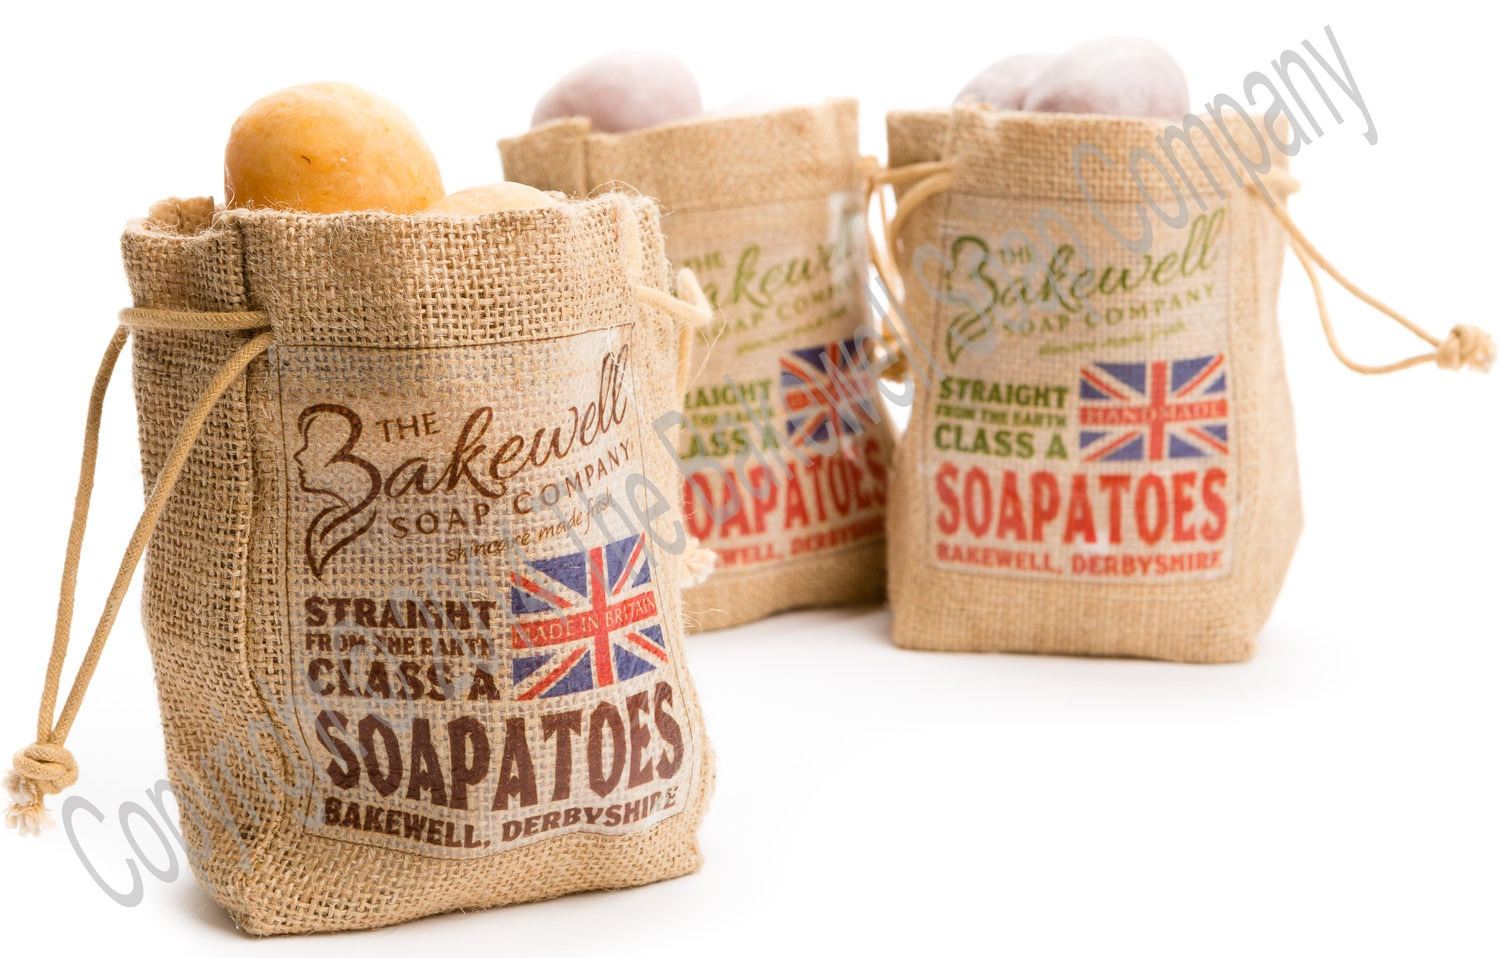 The Bakewell Soap Company